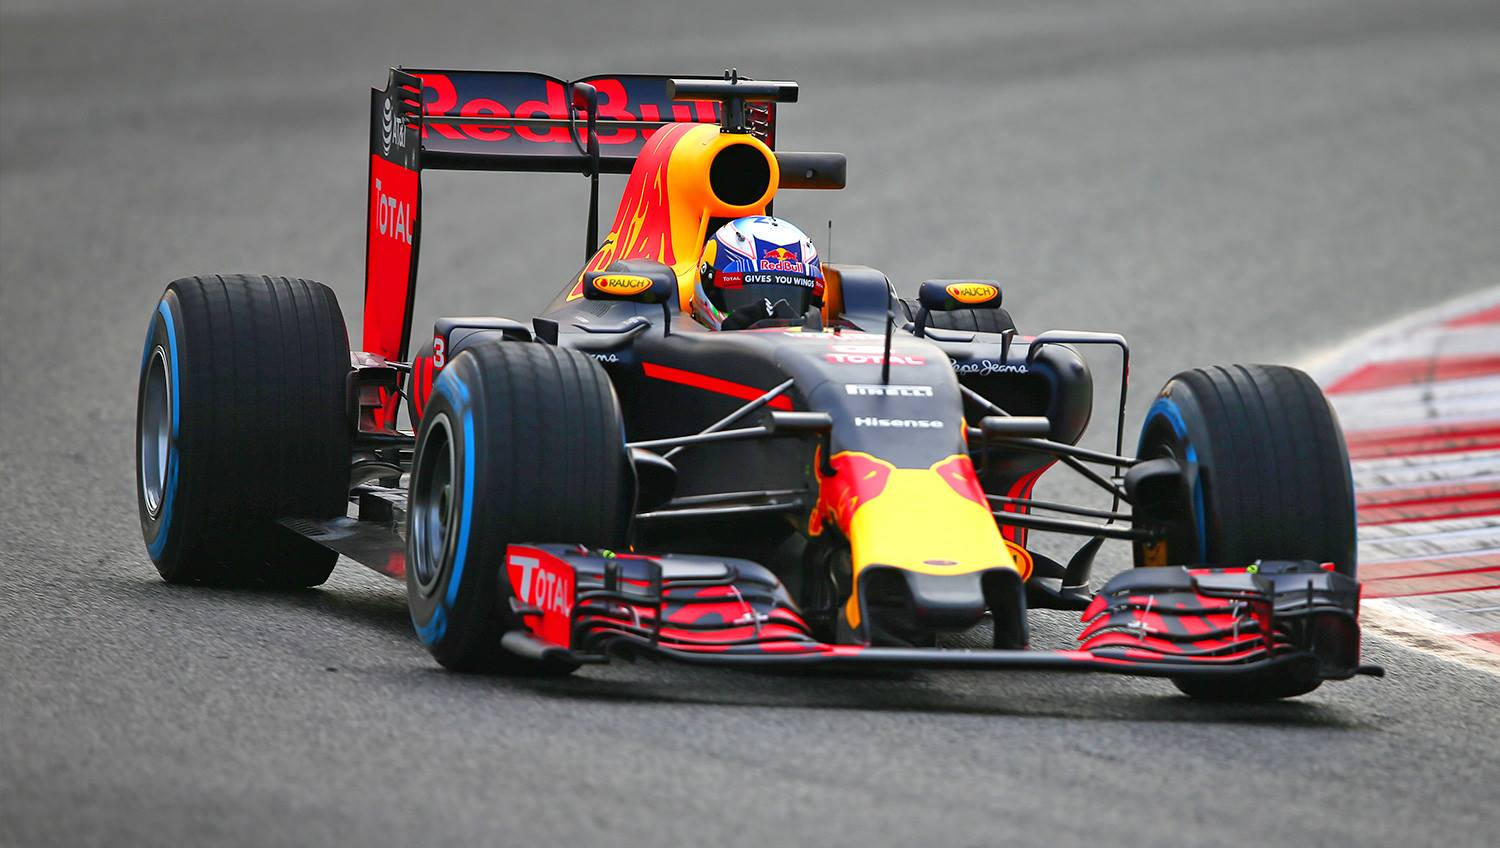 f1 vettel red bull non una minaccia f1 sport news formula 1. Black Bedroom Furniture Sets. Home Design Ideas